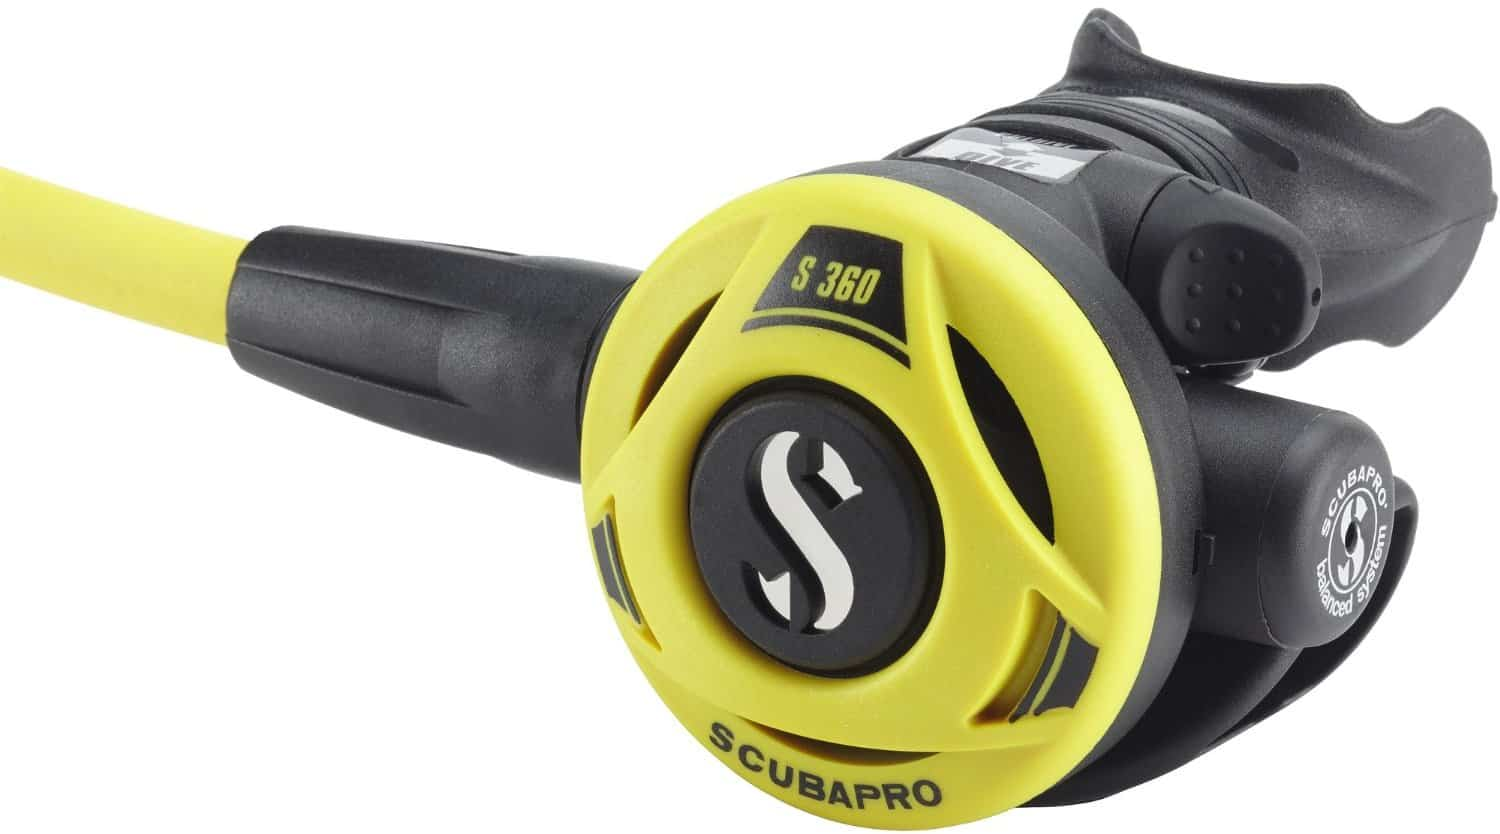 ScubaPro S360 Balanced Octo Regulator